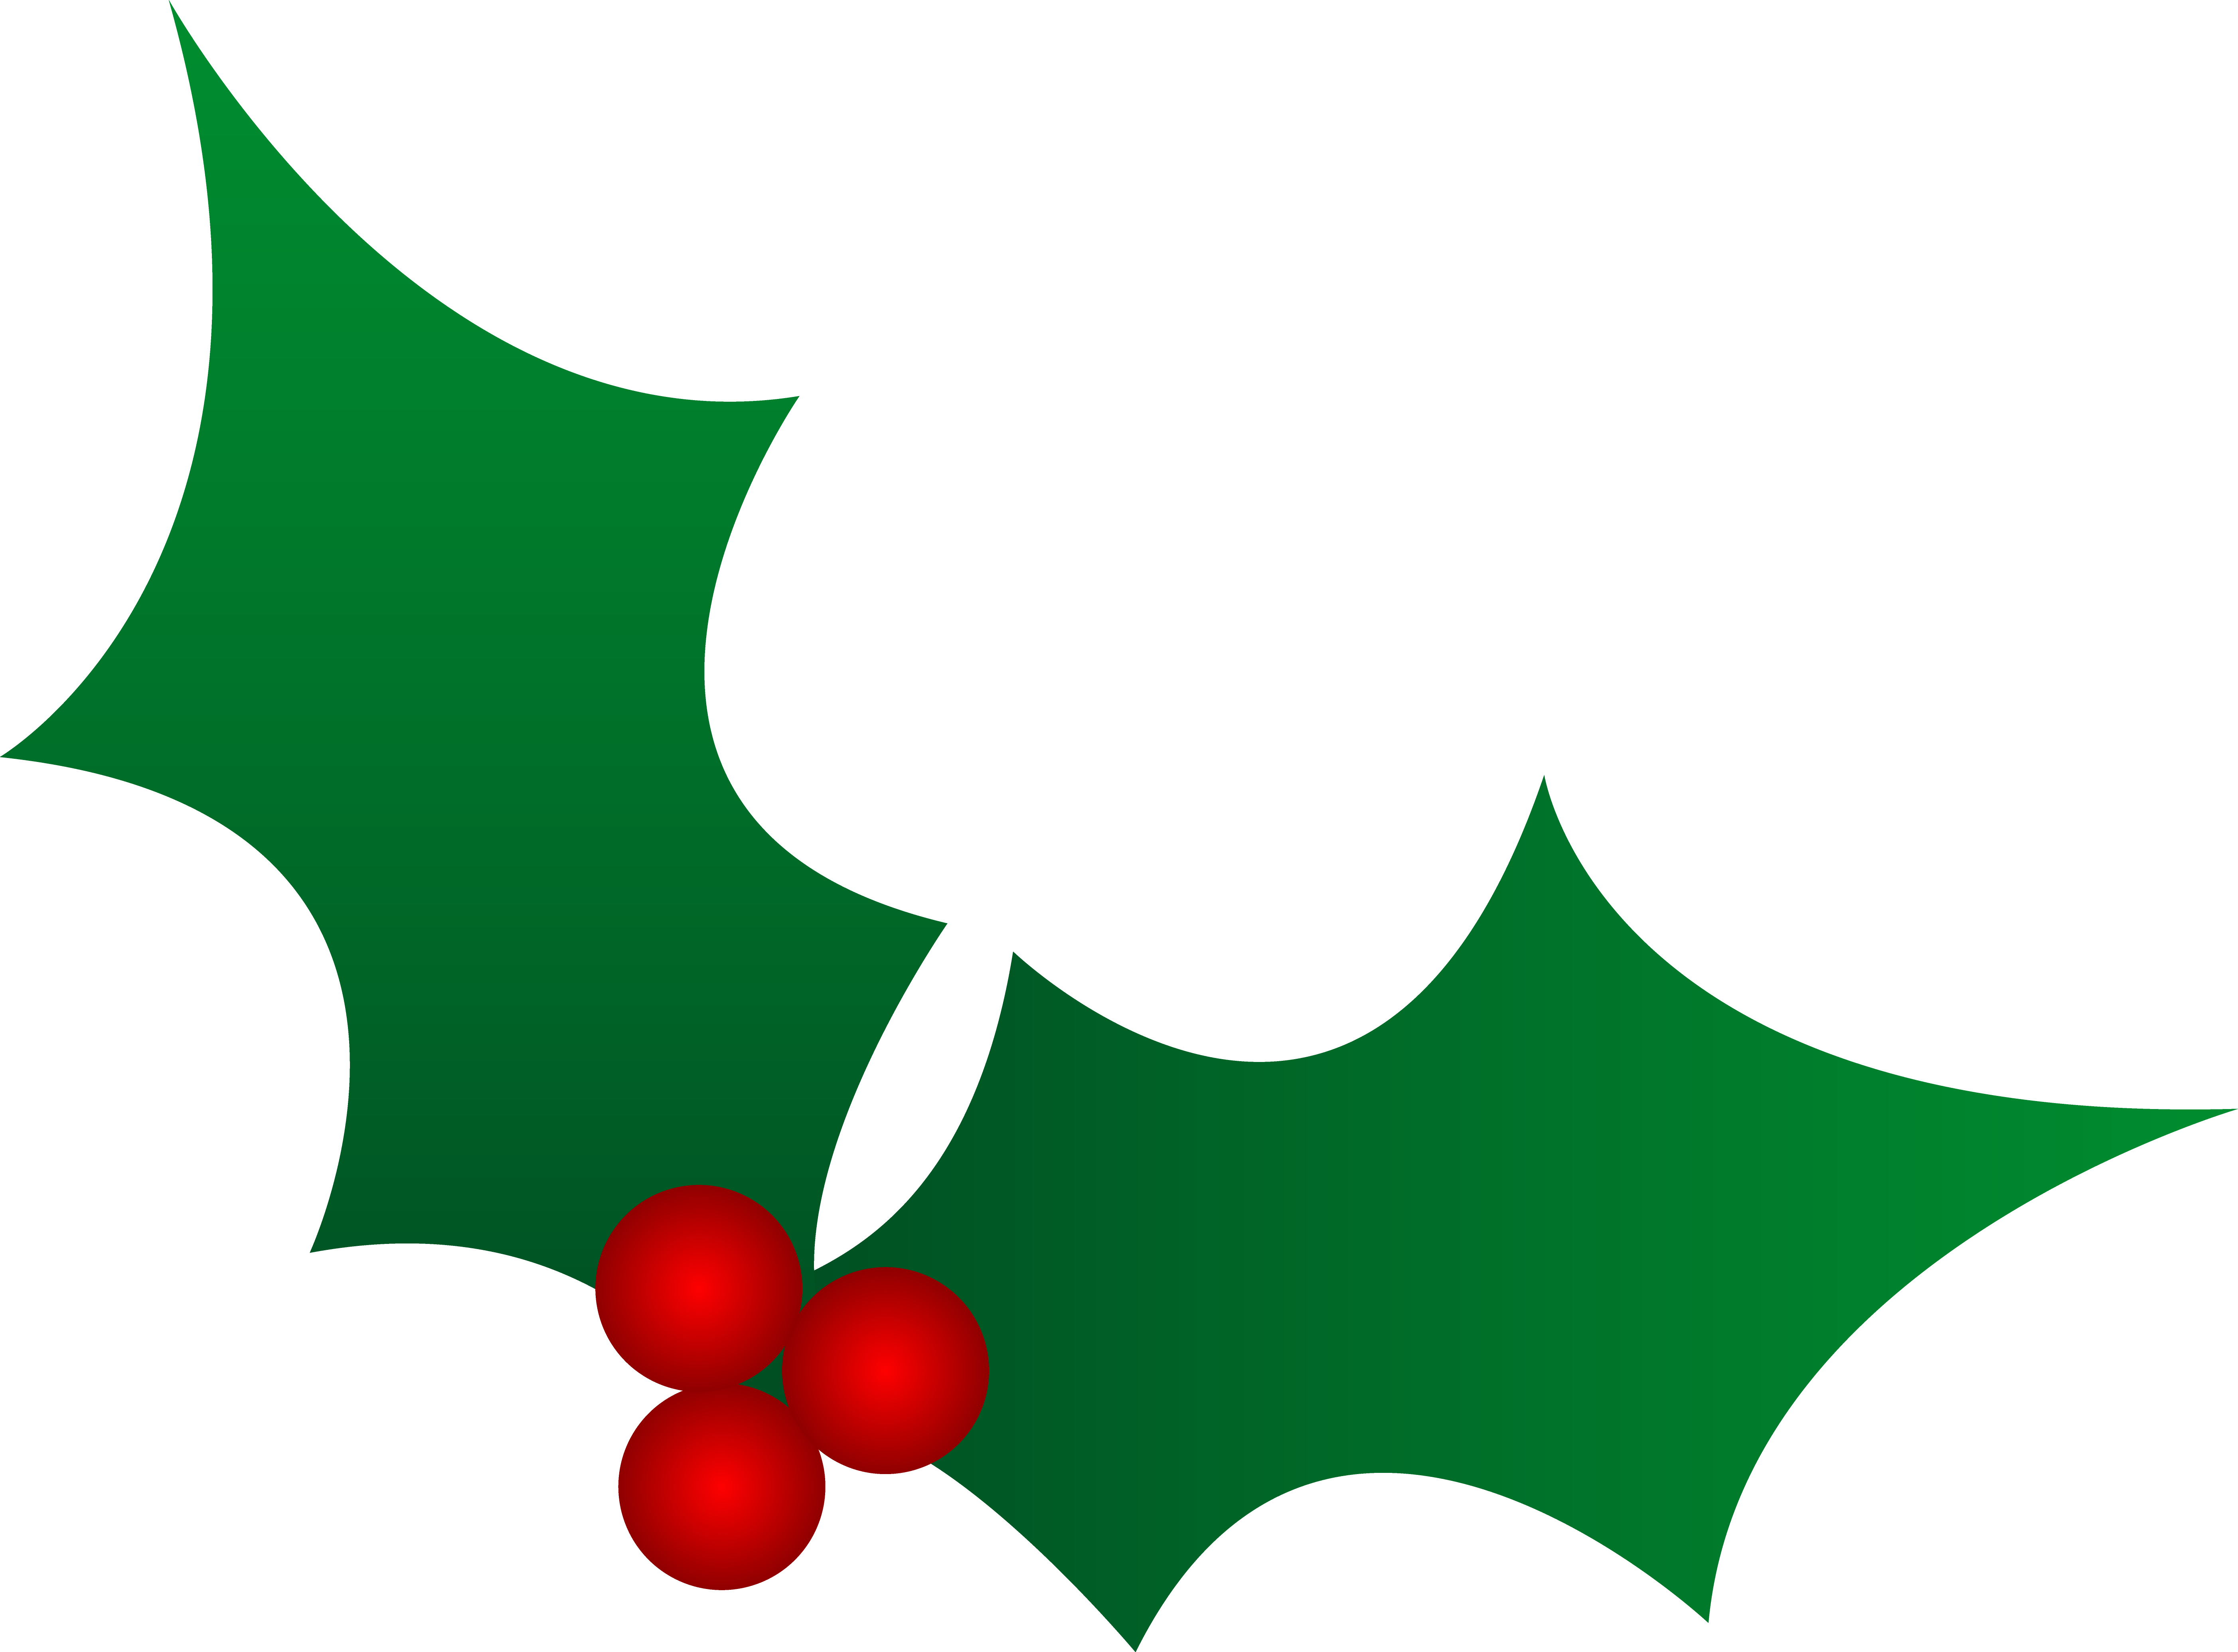 5609x4141 Christmas Holly Design